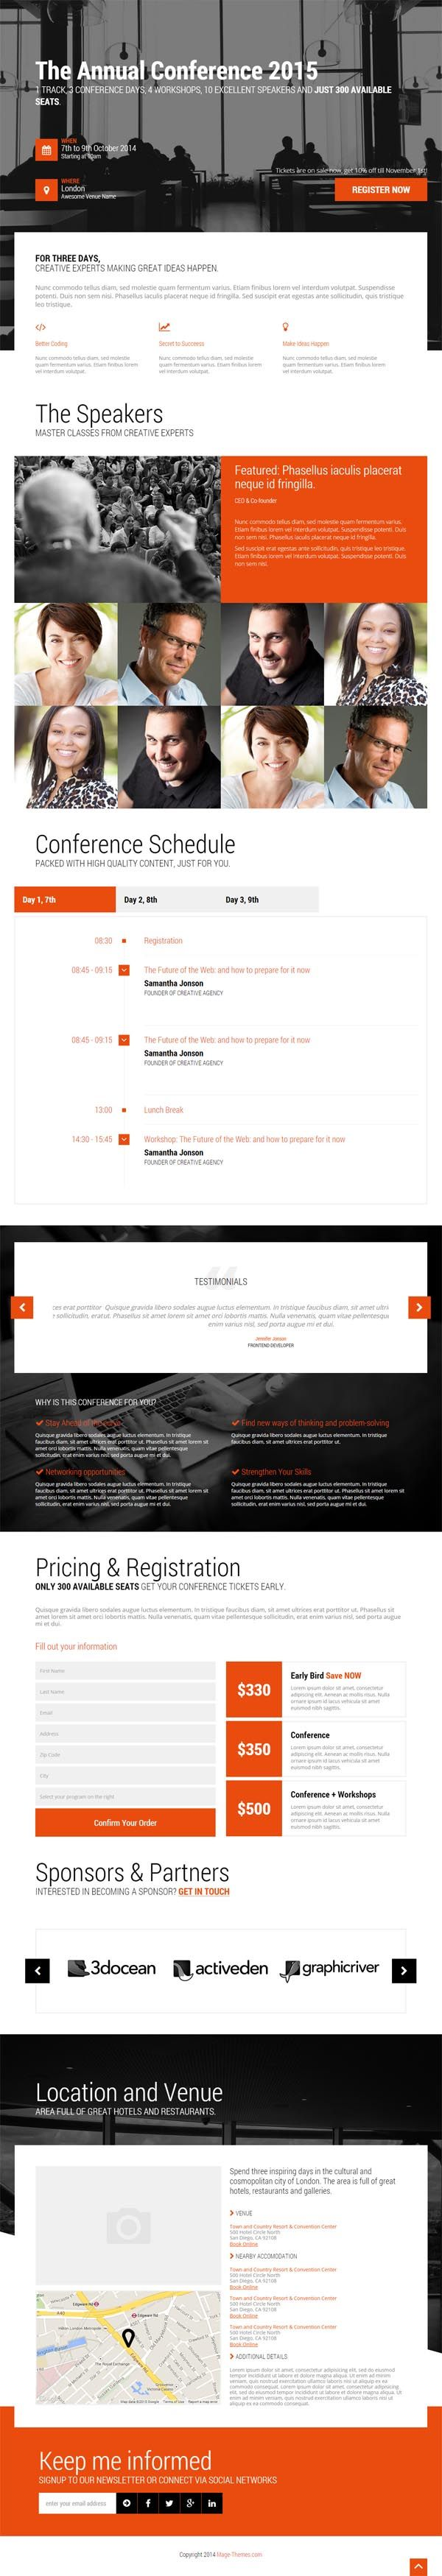 Event - Conference & Event HTML5 Landing Page #html5templates #webtemplates #psdtemplates #responsivedesign